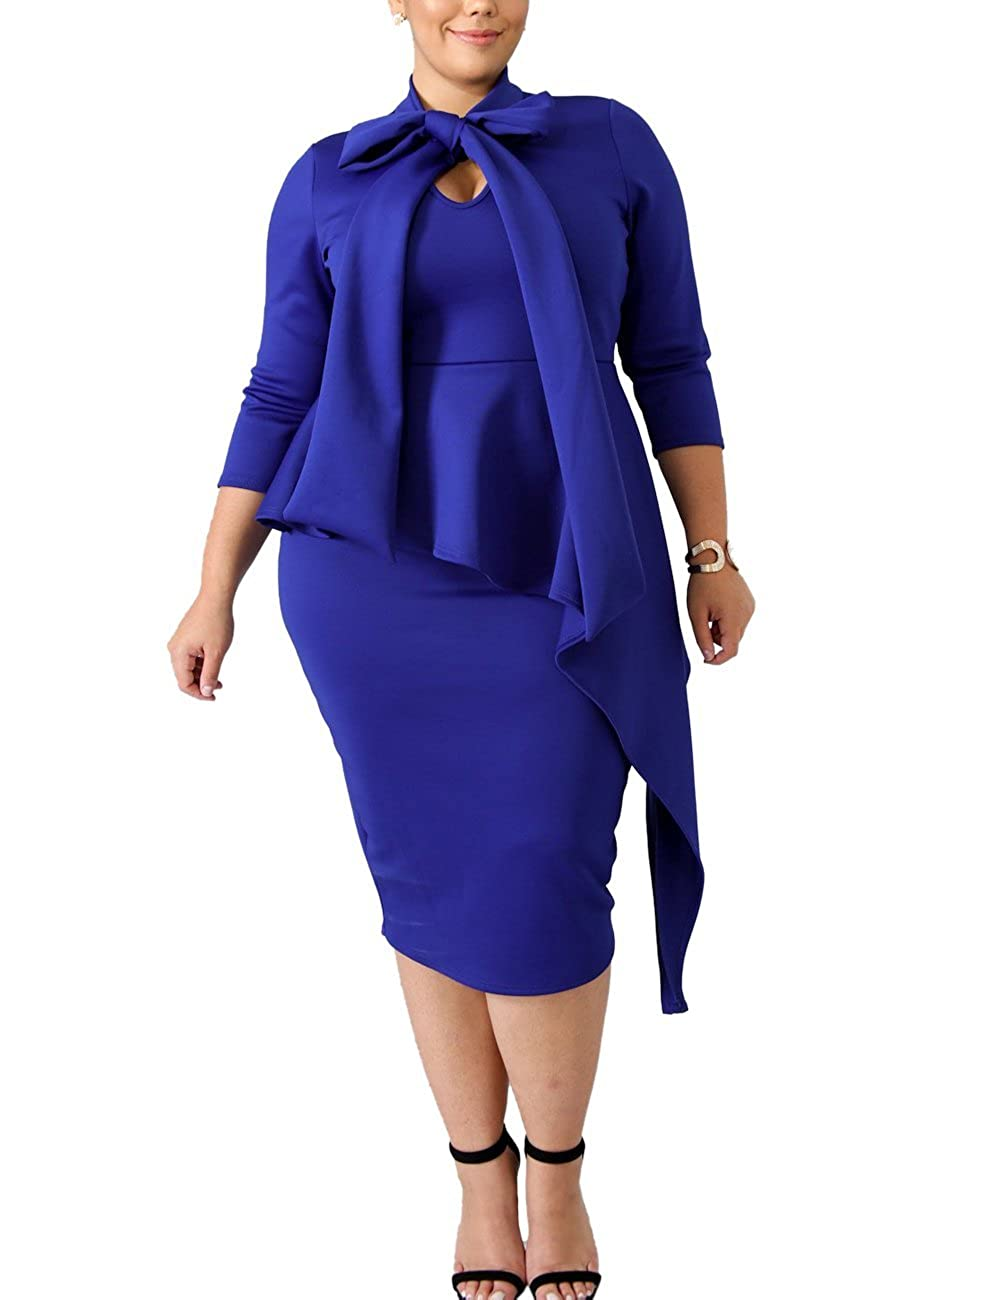 e159ecb9274 XAKALAKA Women s 3 4 Sleeve Plus Size Business Bodycon Pencil Dress with  Tie Neck at Amazon Women s Clothing store